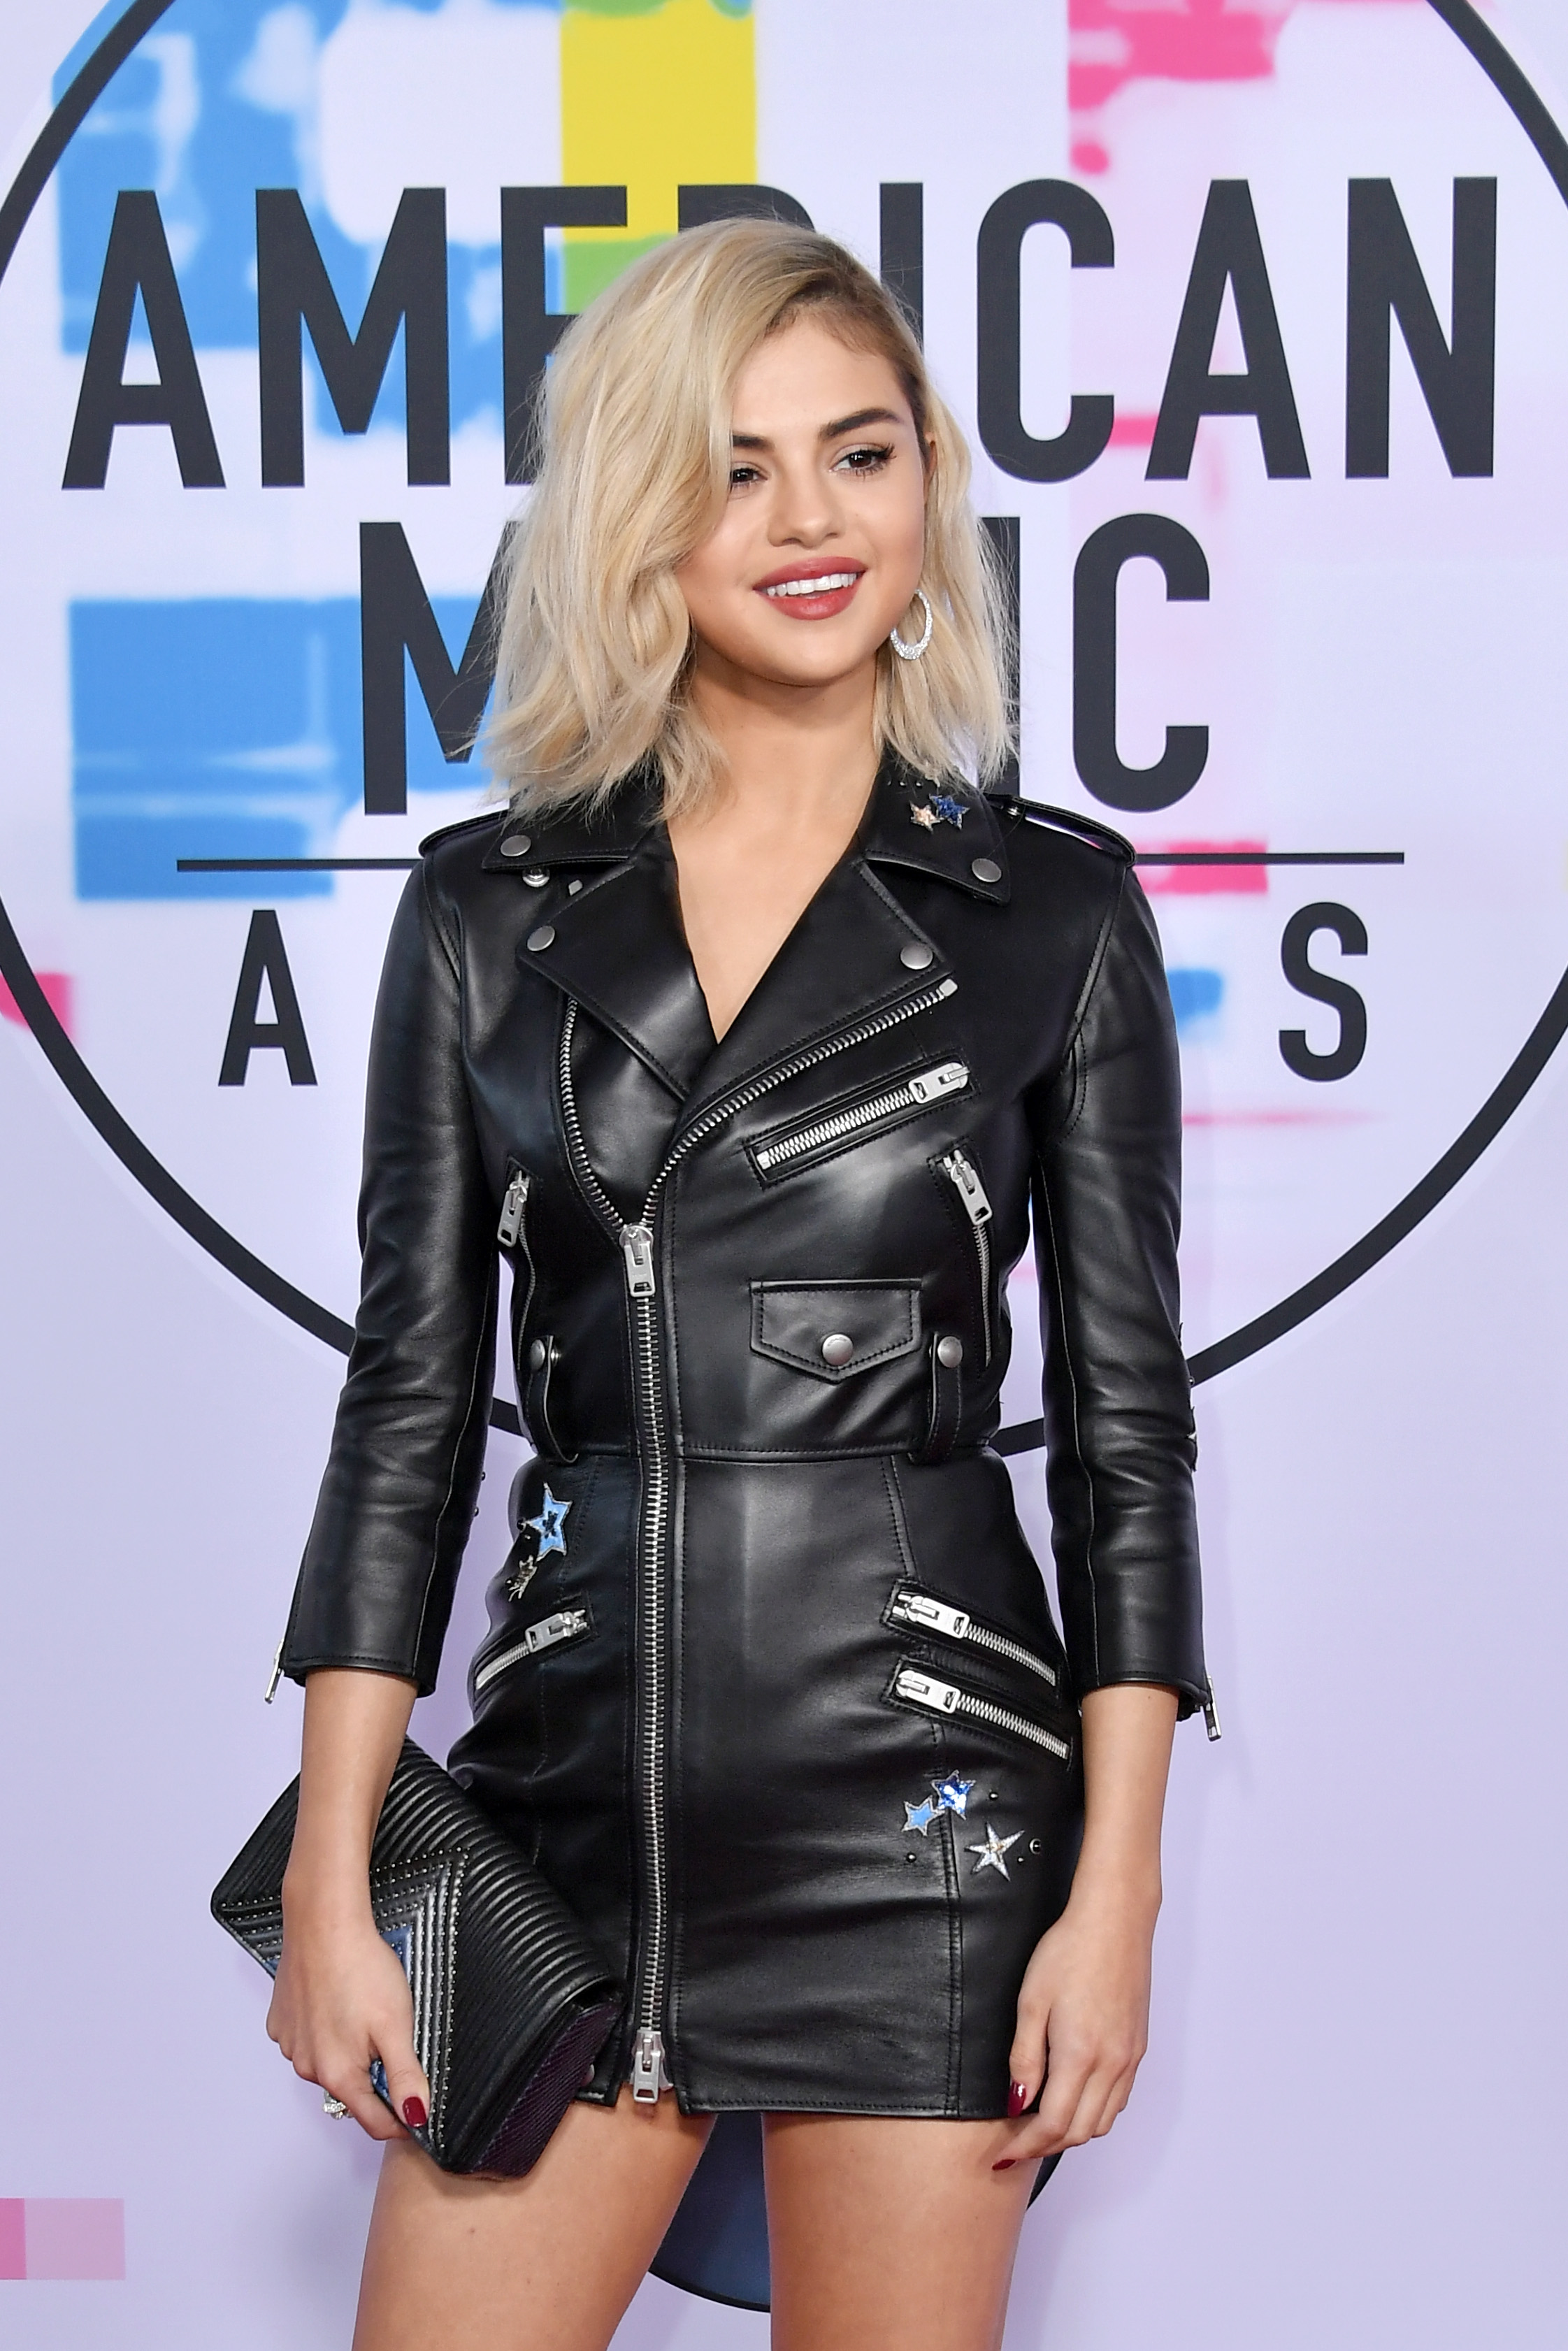 Los Angeles Ca November 19 Selena Gomez Attends The 2017 American Music Awards